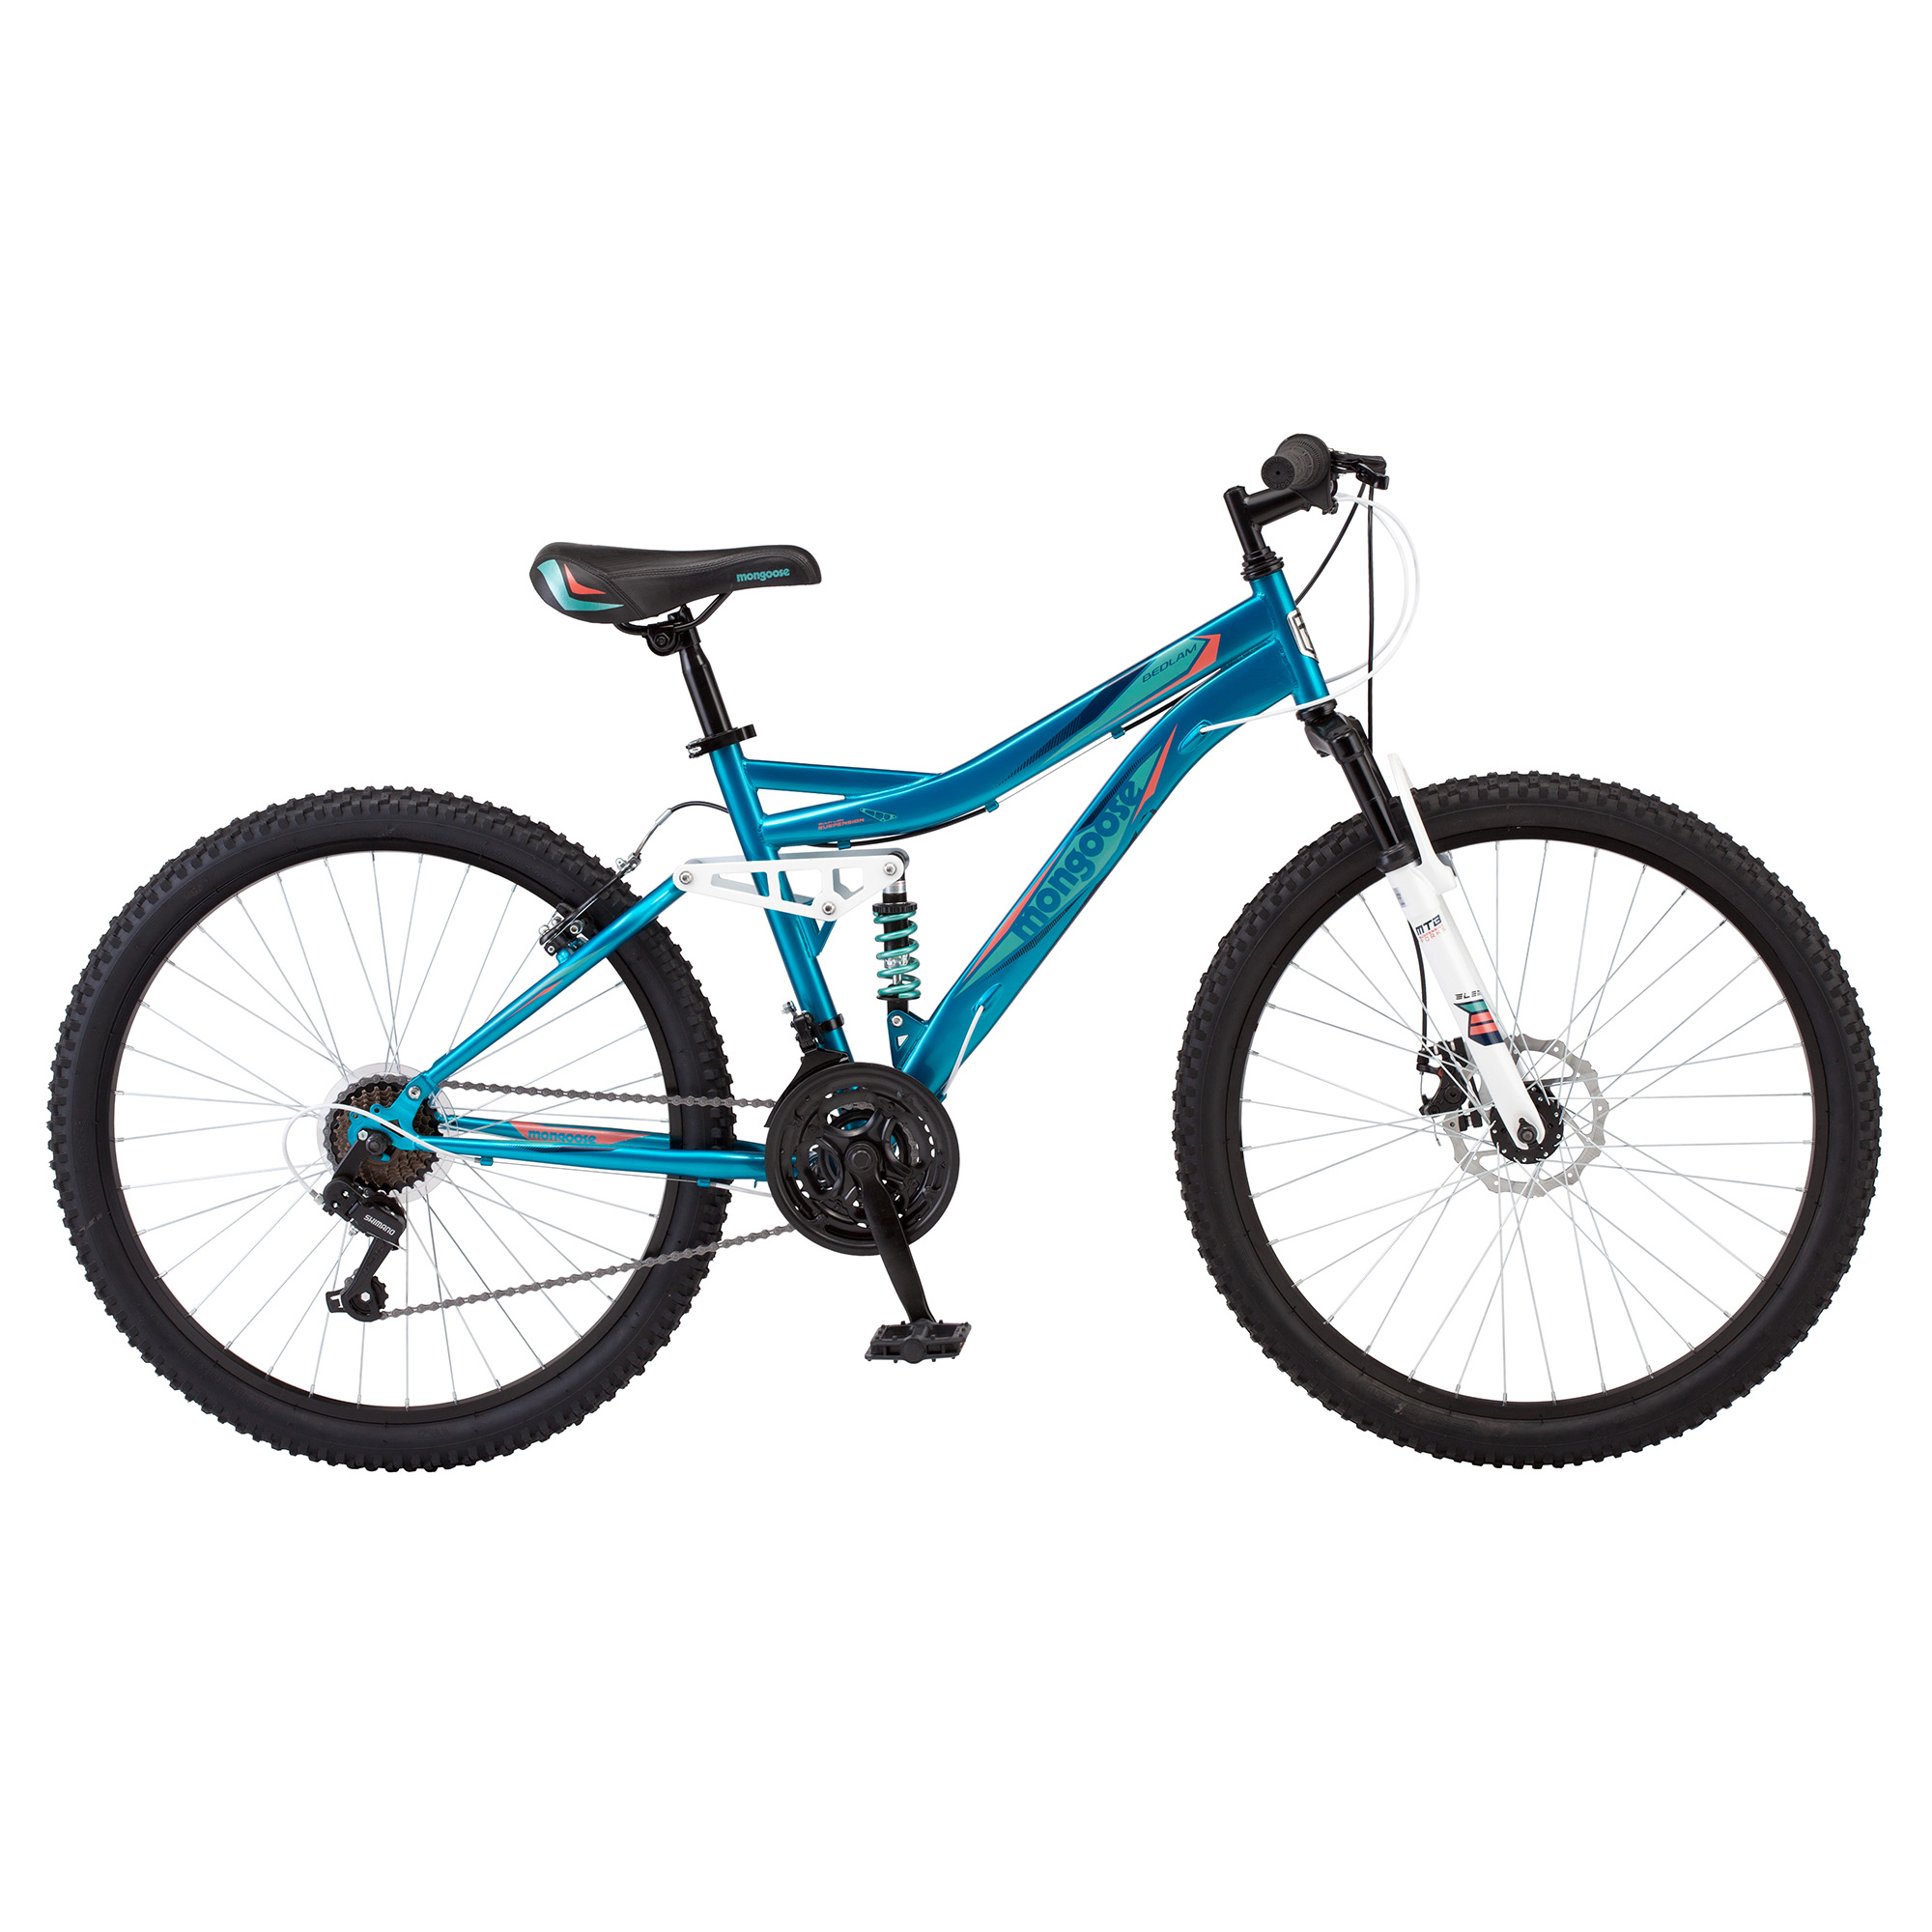 Amazoncom Sleek 24 Mongoose Excursion Boys Steel Framed AllTerrain 21Speed Mountain Bike R1924WM Sports amp Outdoors